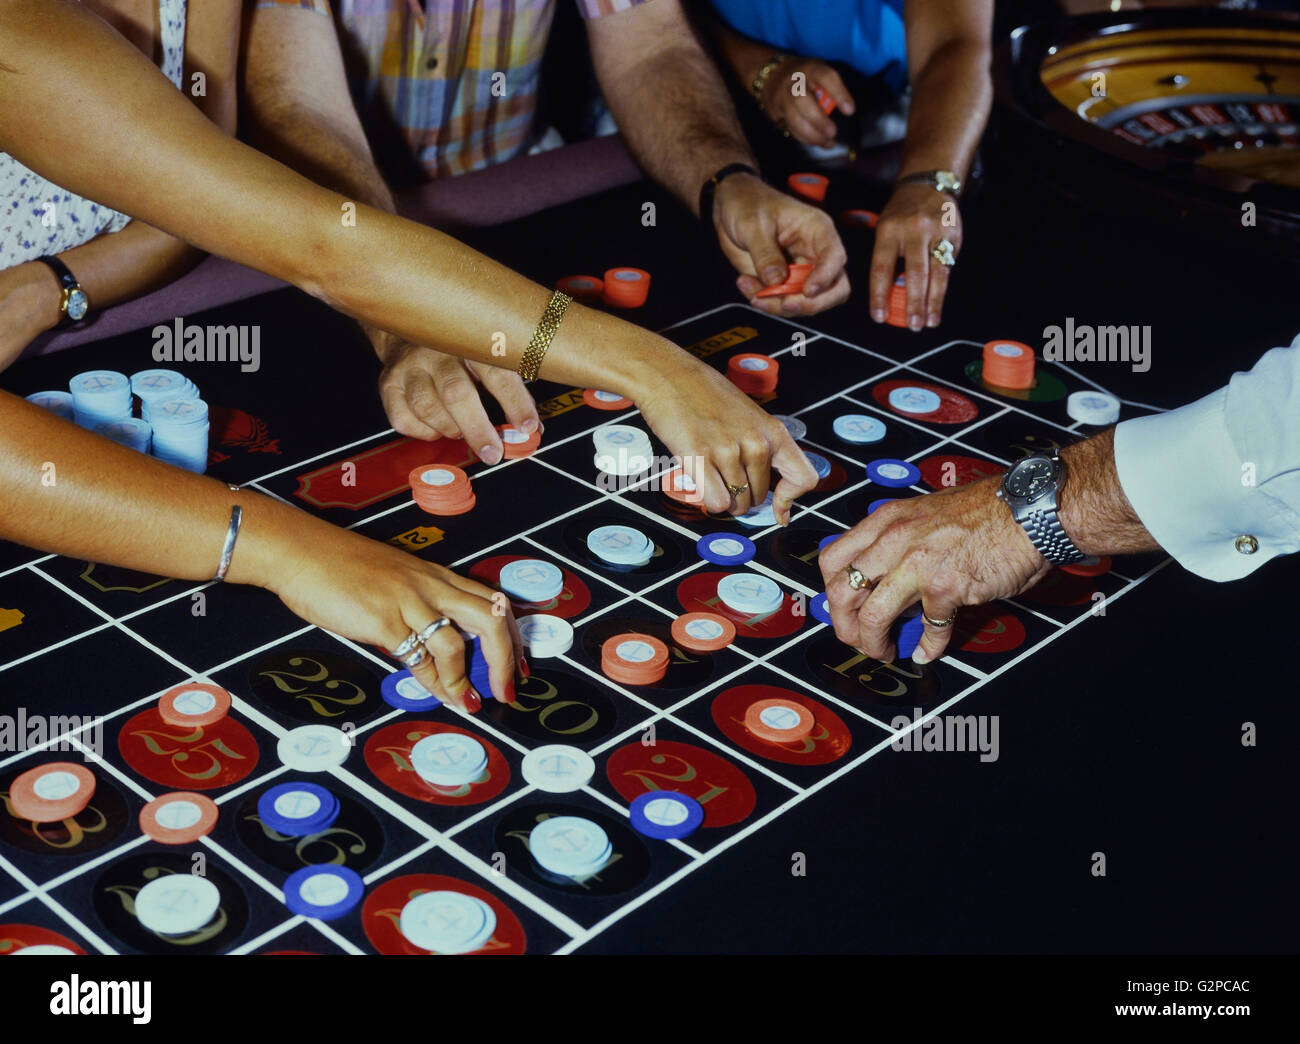 Roulette players and dealer placing chips on the table Stock Photo